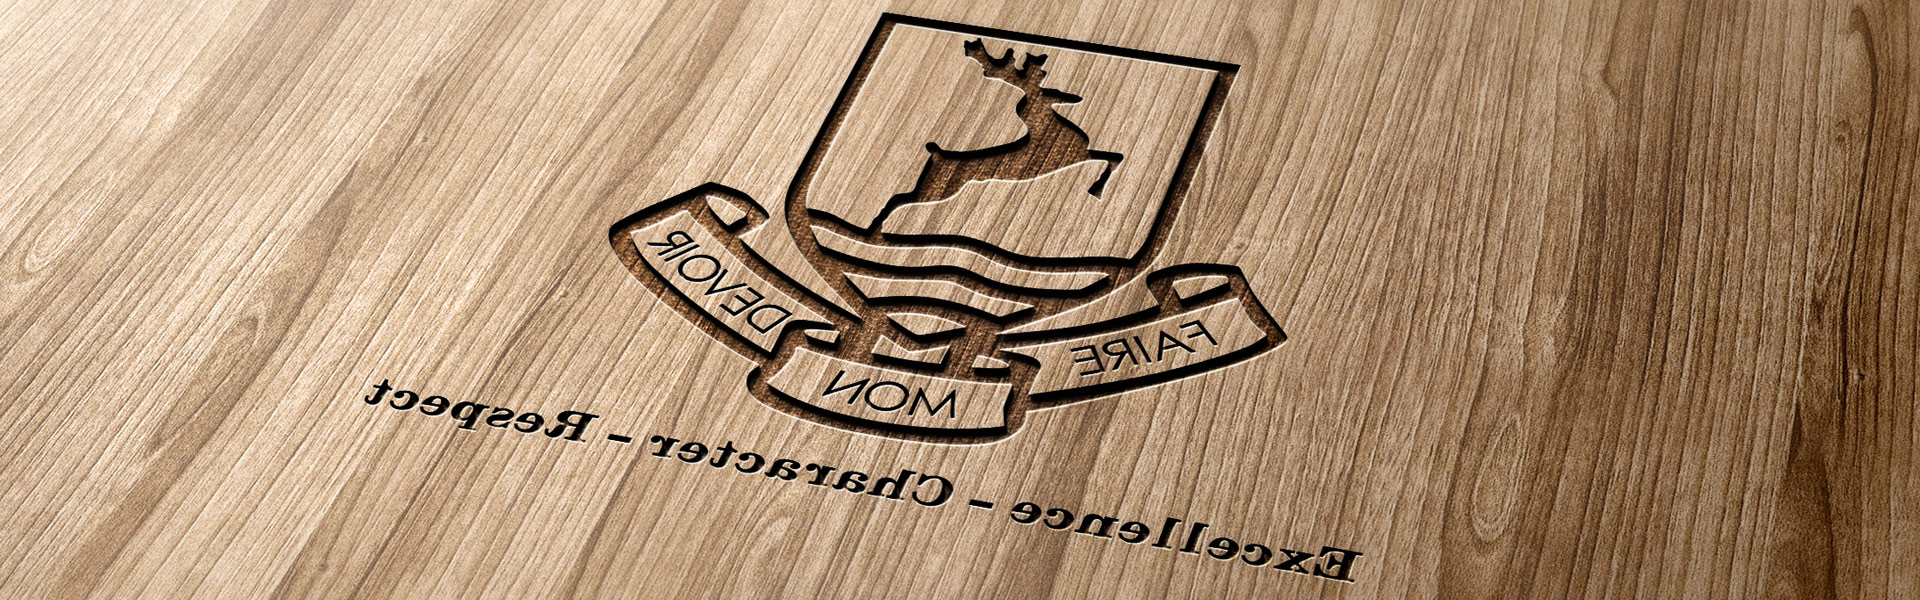 school logo and strapline laser-etched into wood